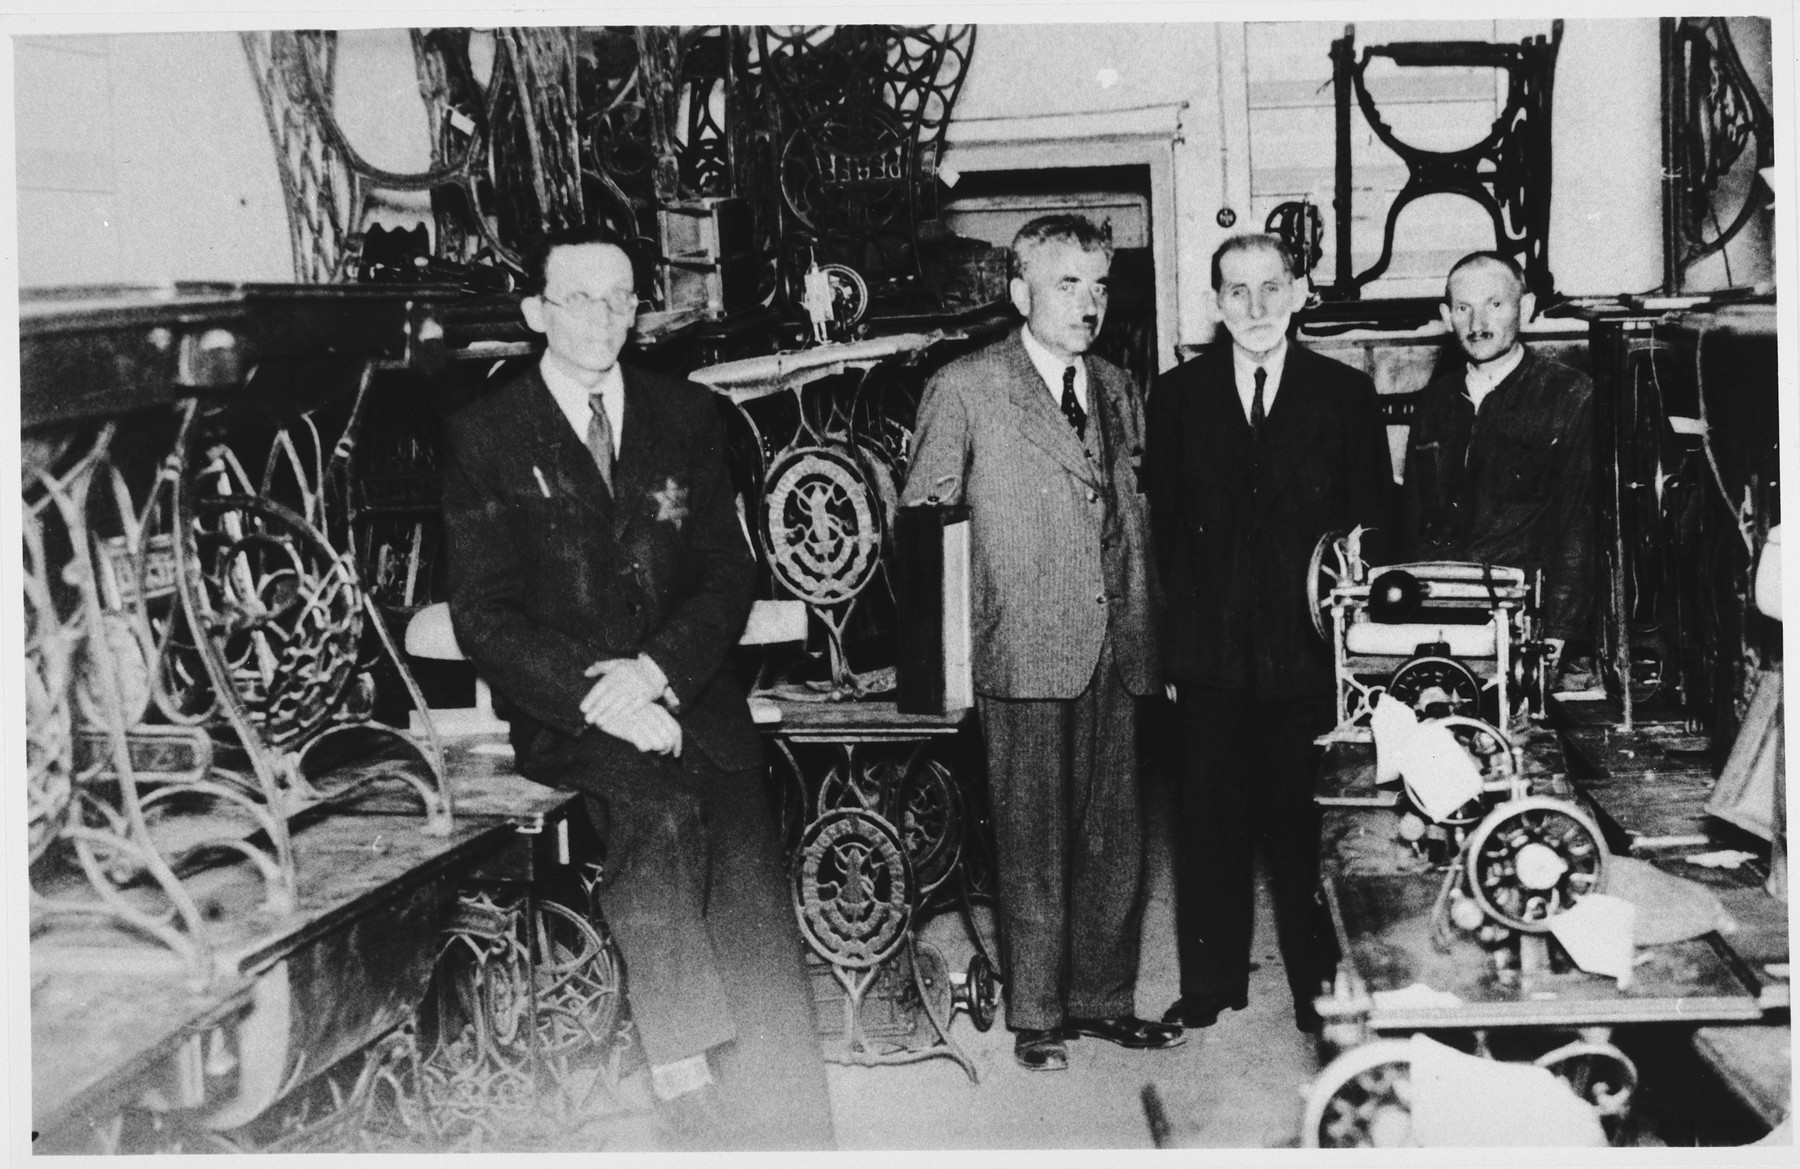 Four men wearing Jewish stars pose in a ghetto workshop filled with sewing machines.